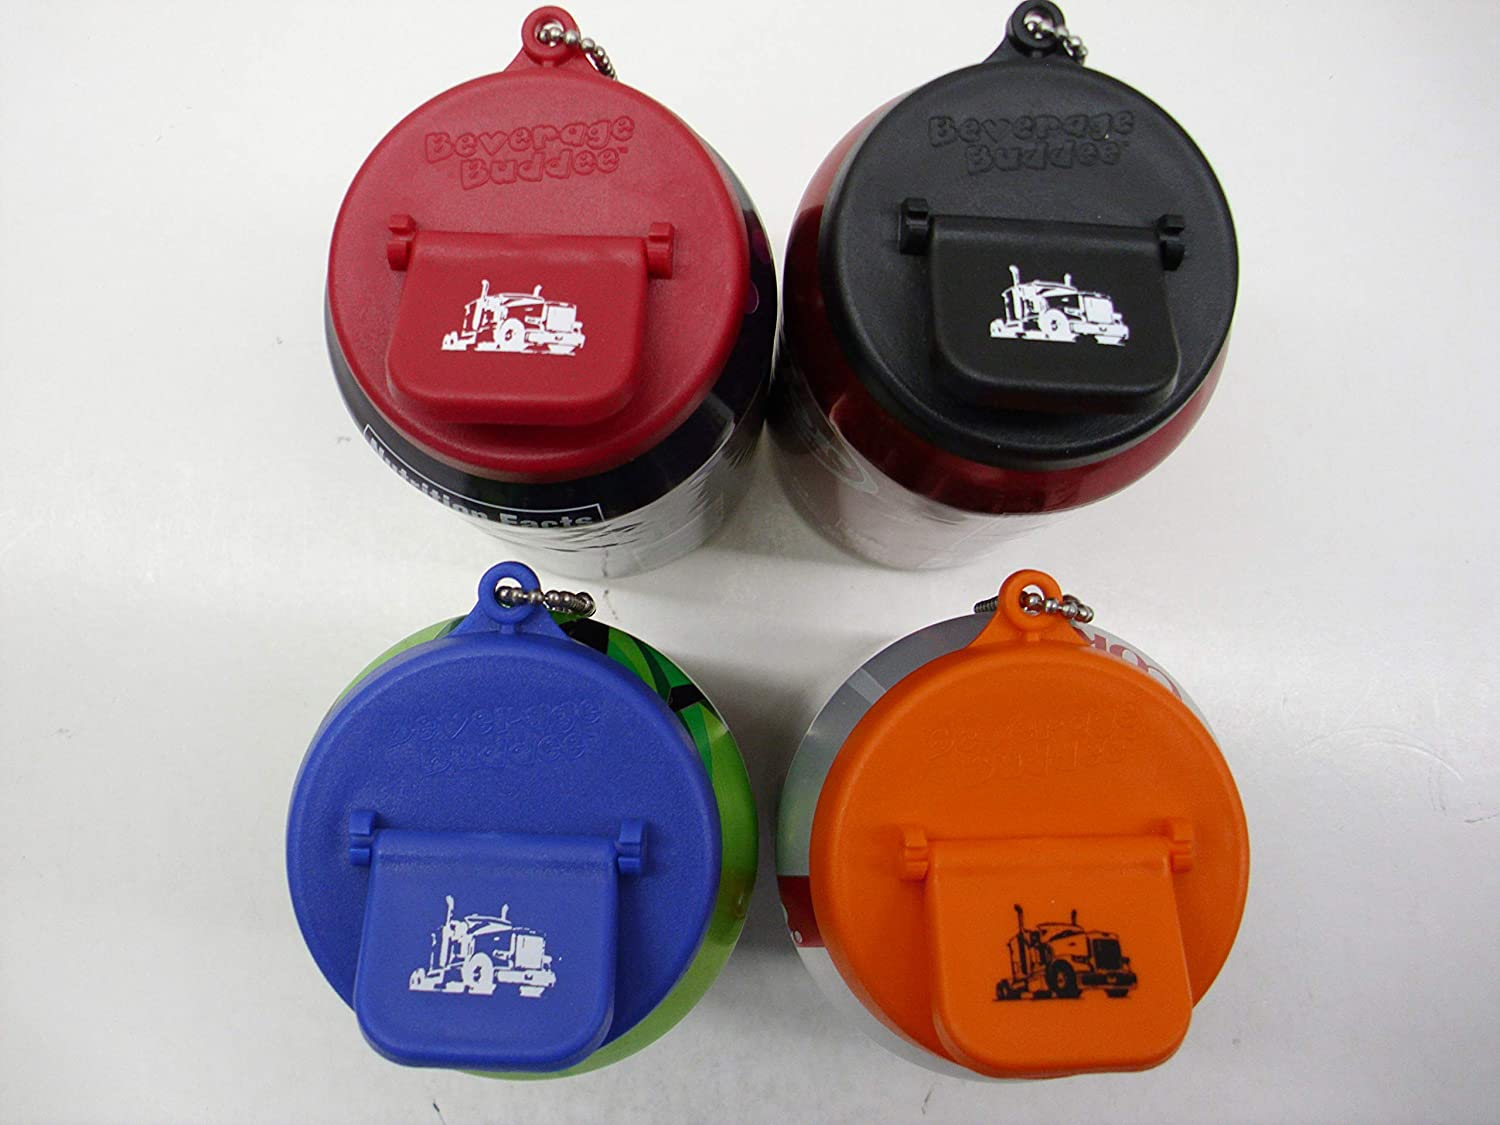 Beverage Buddee Can Cover - Semi Imprint with Keychain - Best Can Cover For Standard Size Soda/Beer/Energy Drink Cans - Made In The USA - BPA-PCB Free